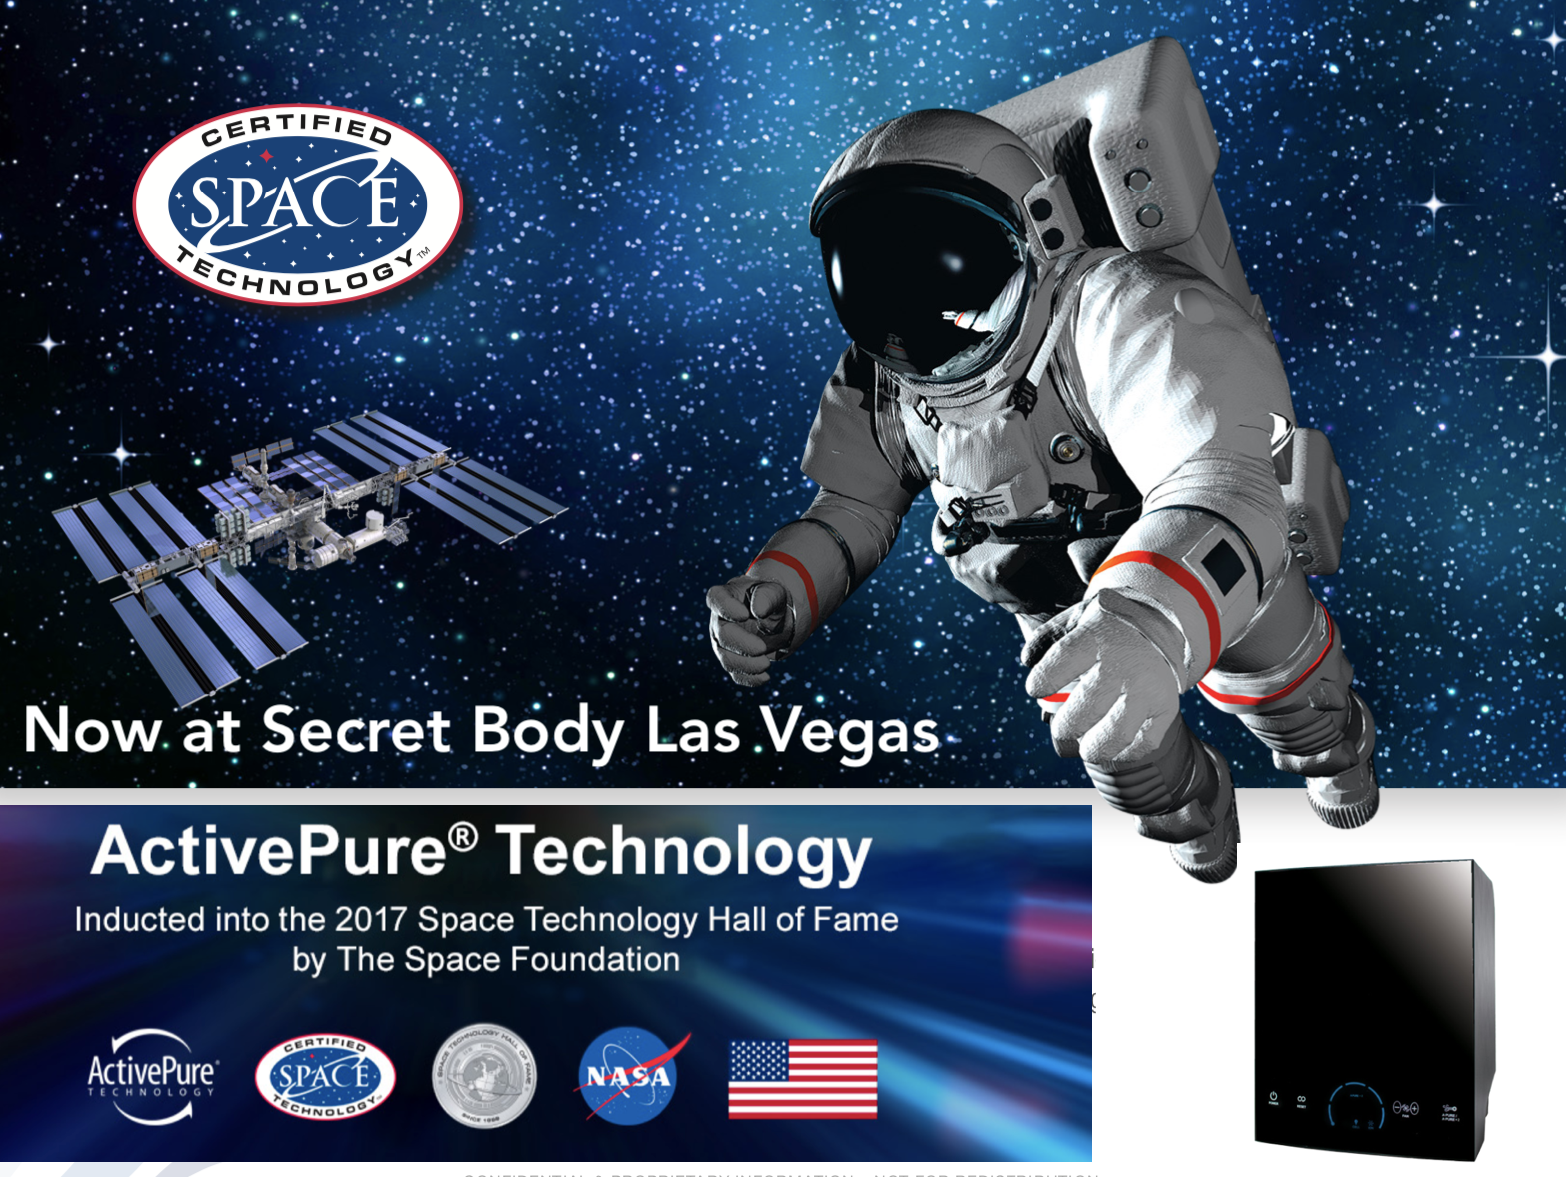 America's Top Coolsculpting Clinic in Las Vegas Secret Body Medical Spa, Now Offers Virus & Bacteria Free Air with Vollara's ActivePure Technology